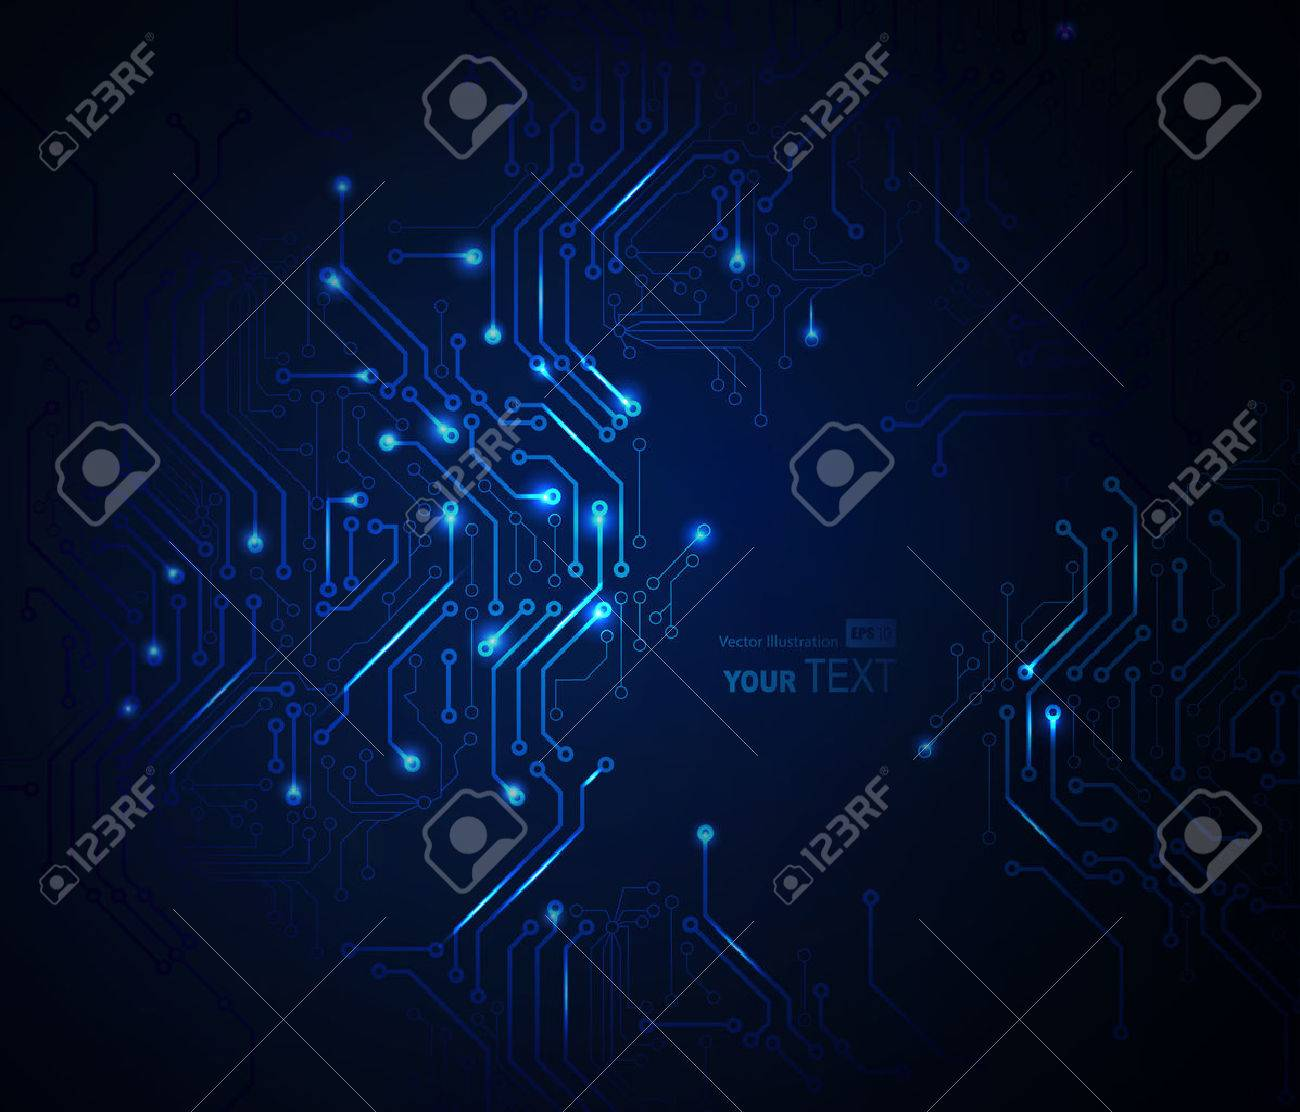 Circuit Board Stock Photos Royalty Free Images Electronic Repair Field Service Blue Abstract Background Of Digital Technologies